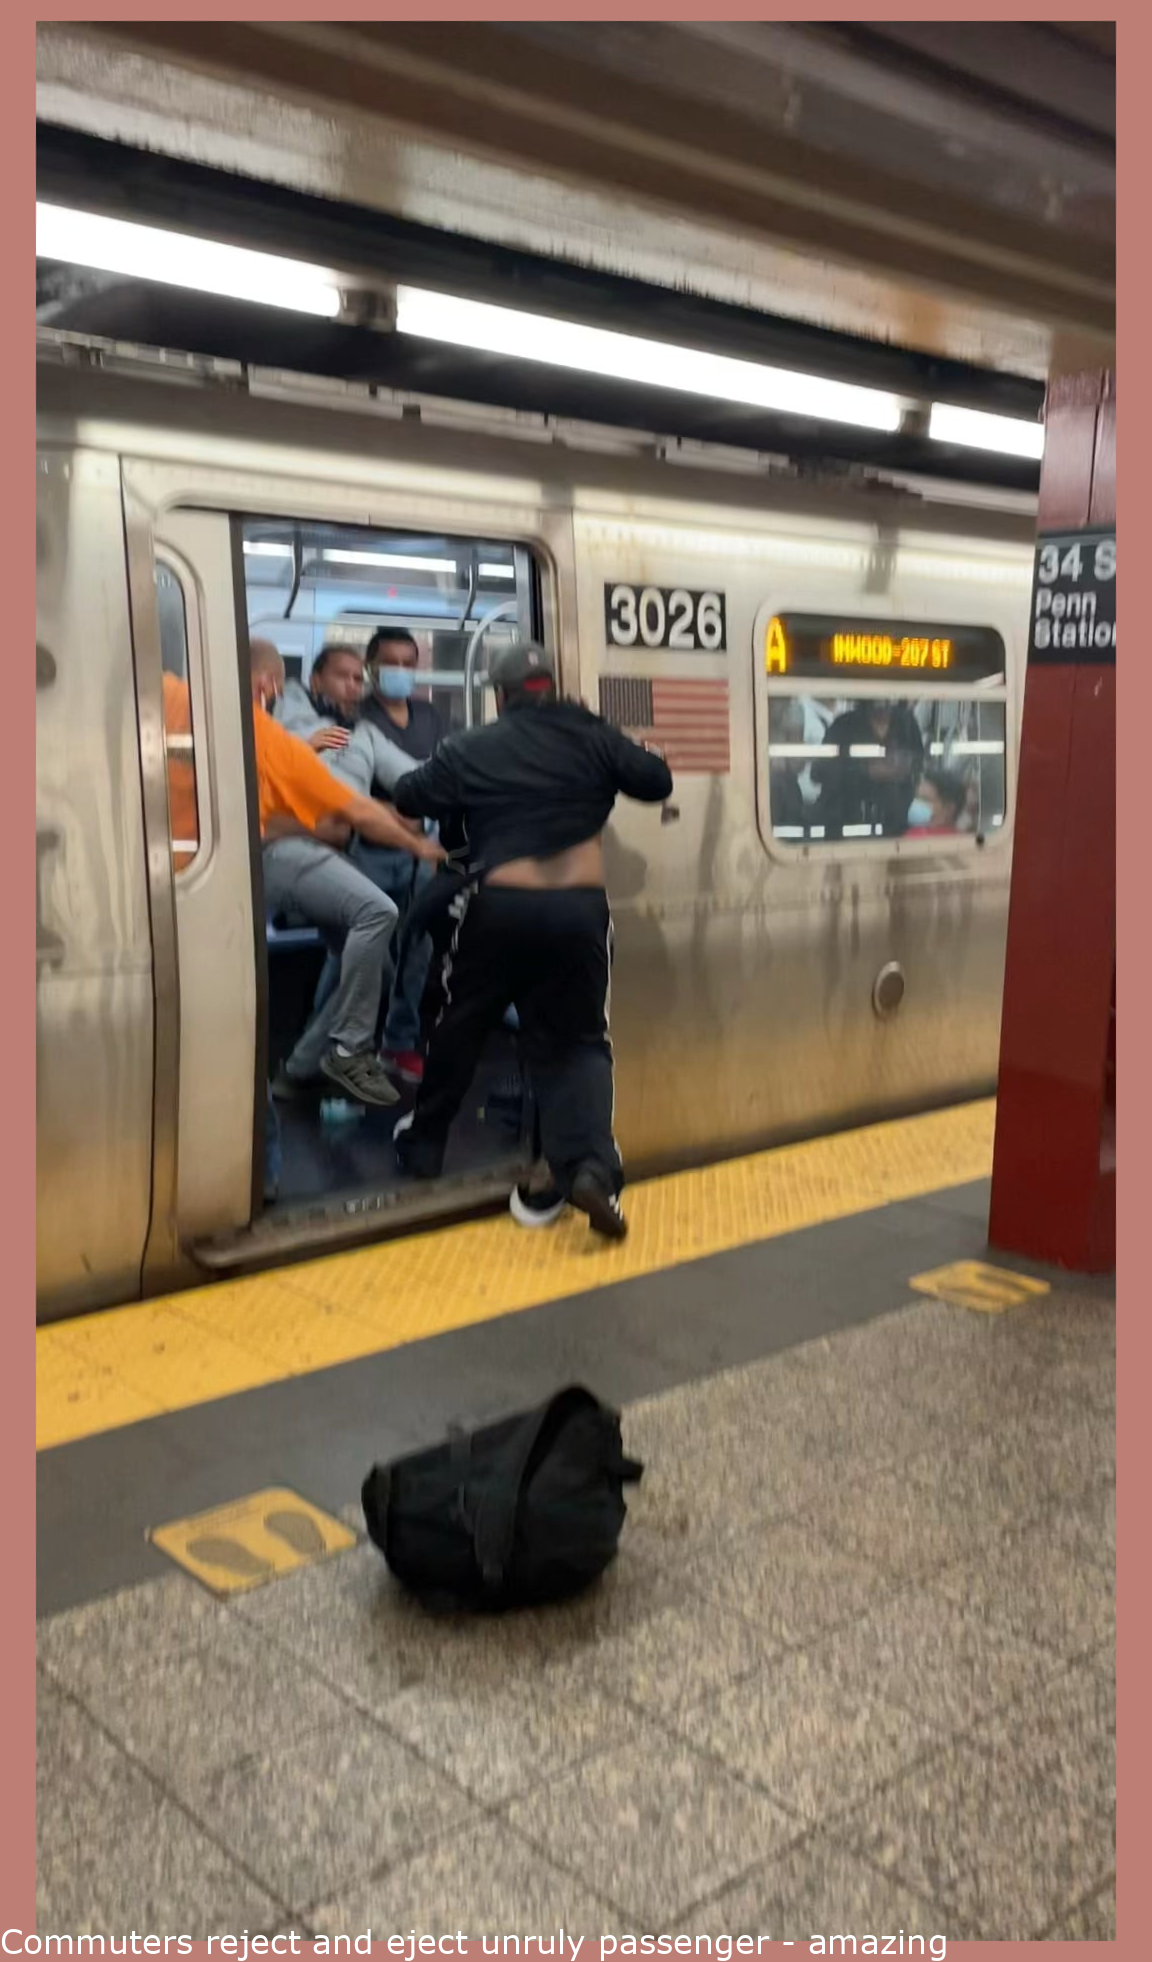 Commuters reject and eject unruly passenger